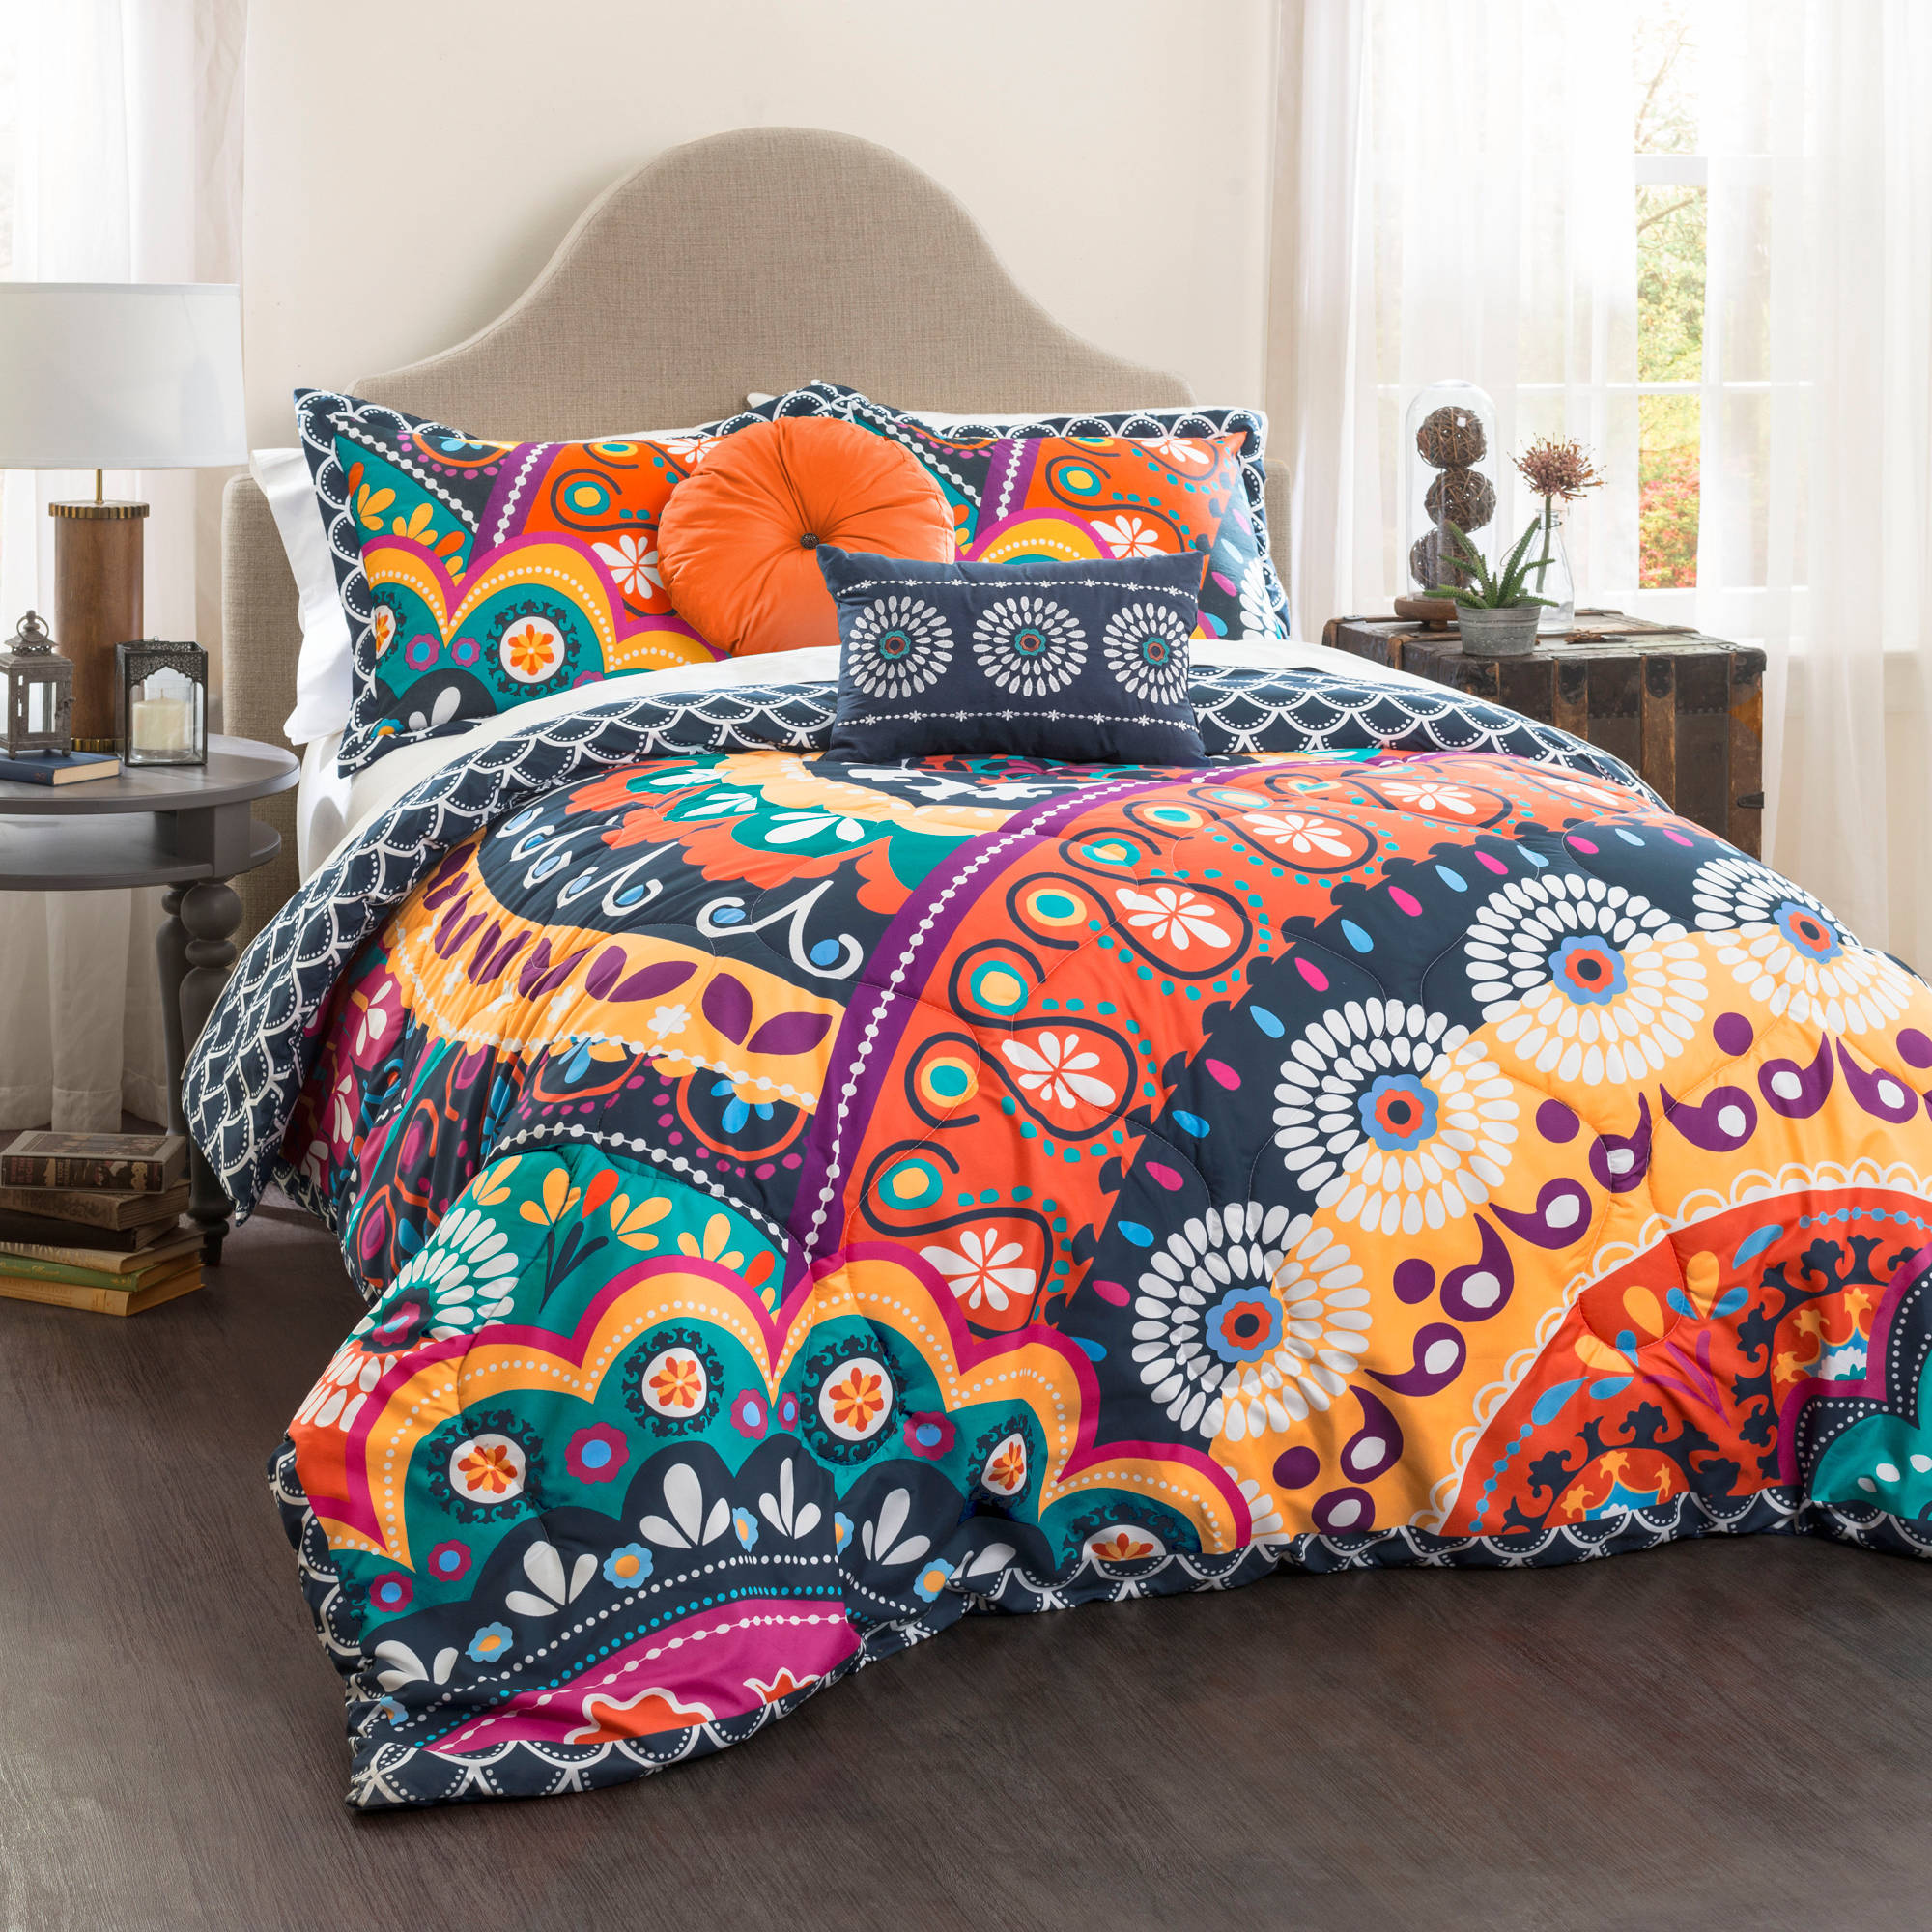 Maya Quilted Comforter Navy/Orange 5-Piece Set, King